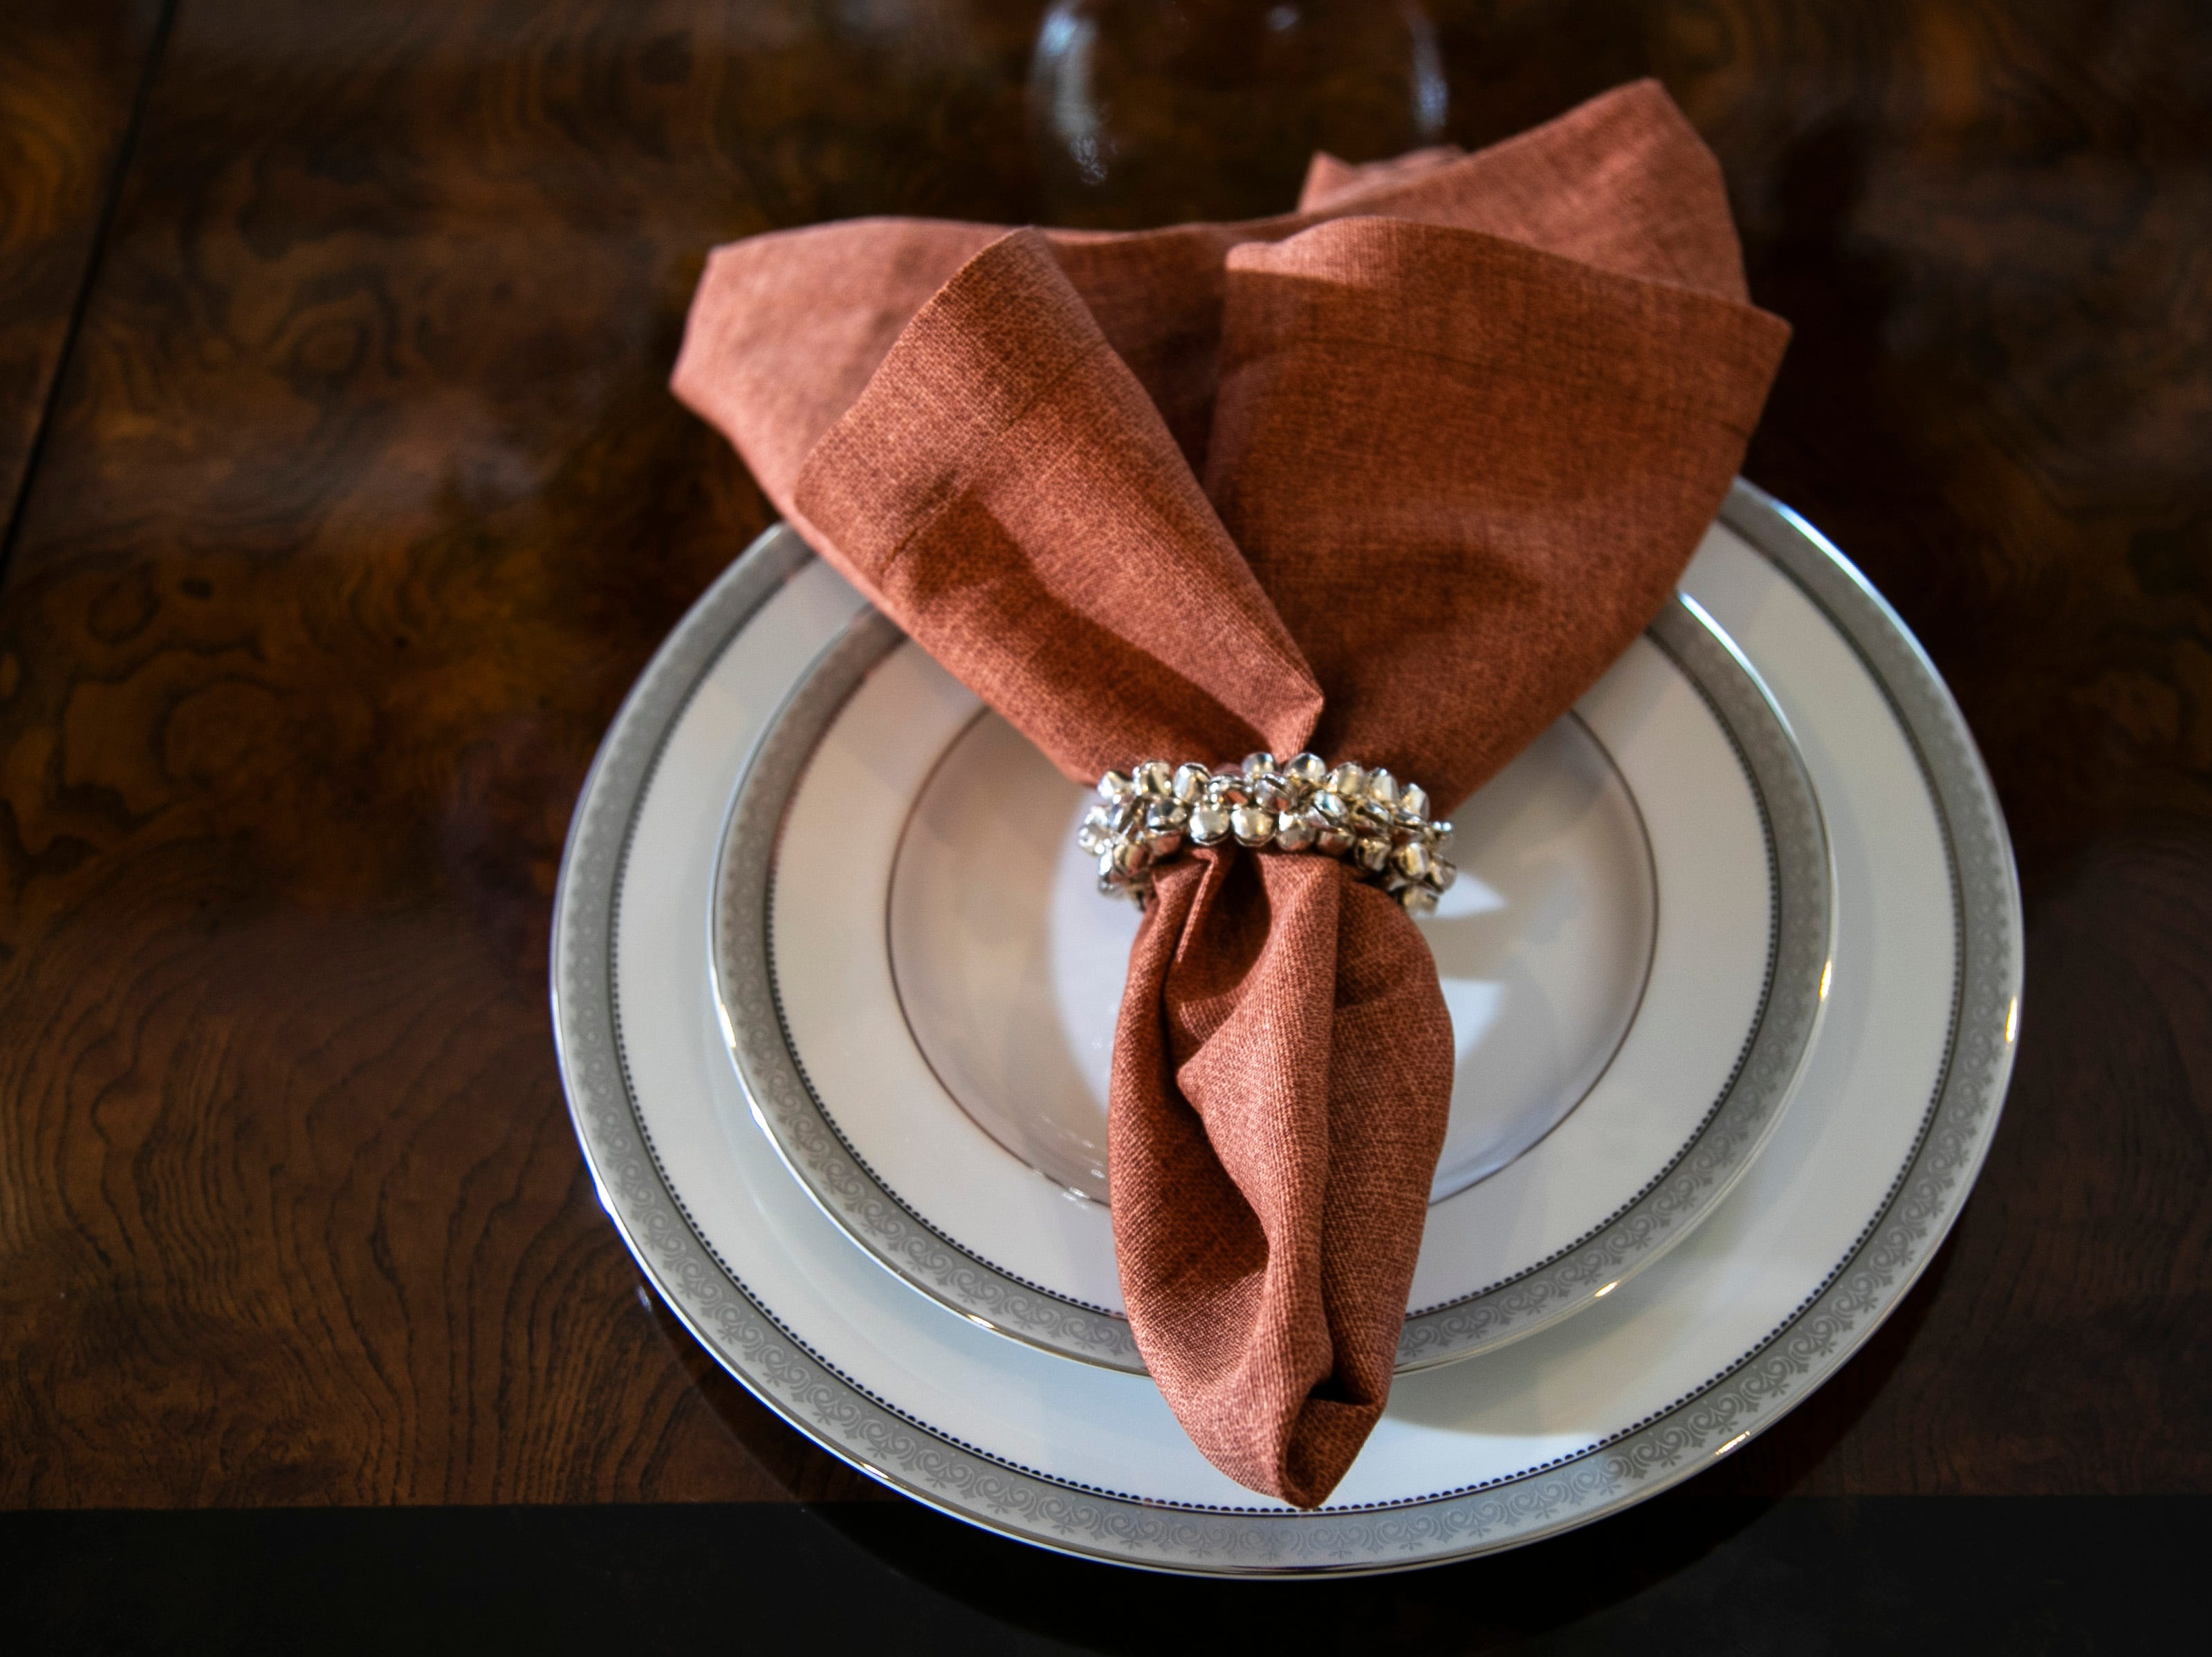 A place setting in the formal dining room of the Mack home.